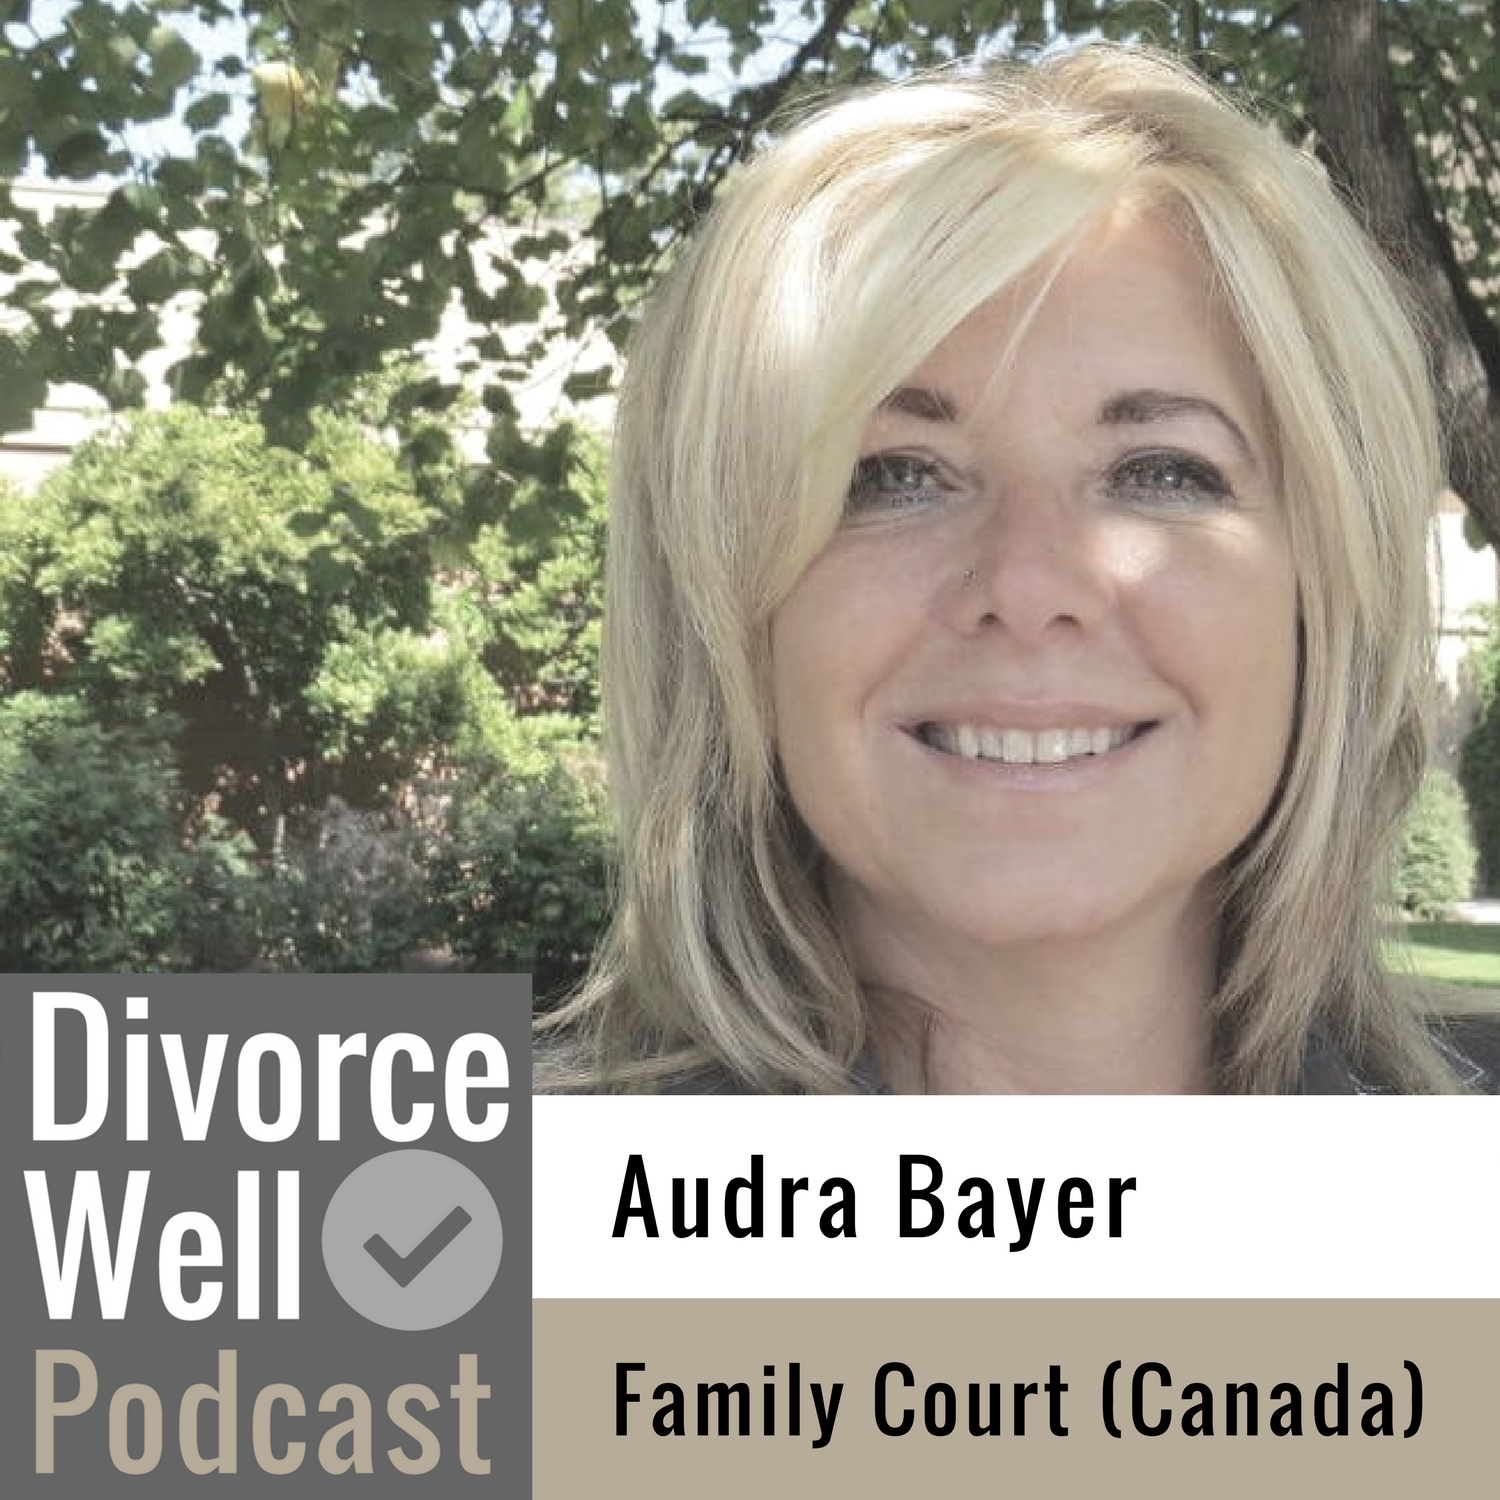 The Divorce Well Podcast - 20 - The experience of Family Court in Canada, with Audra Bayer